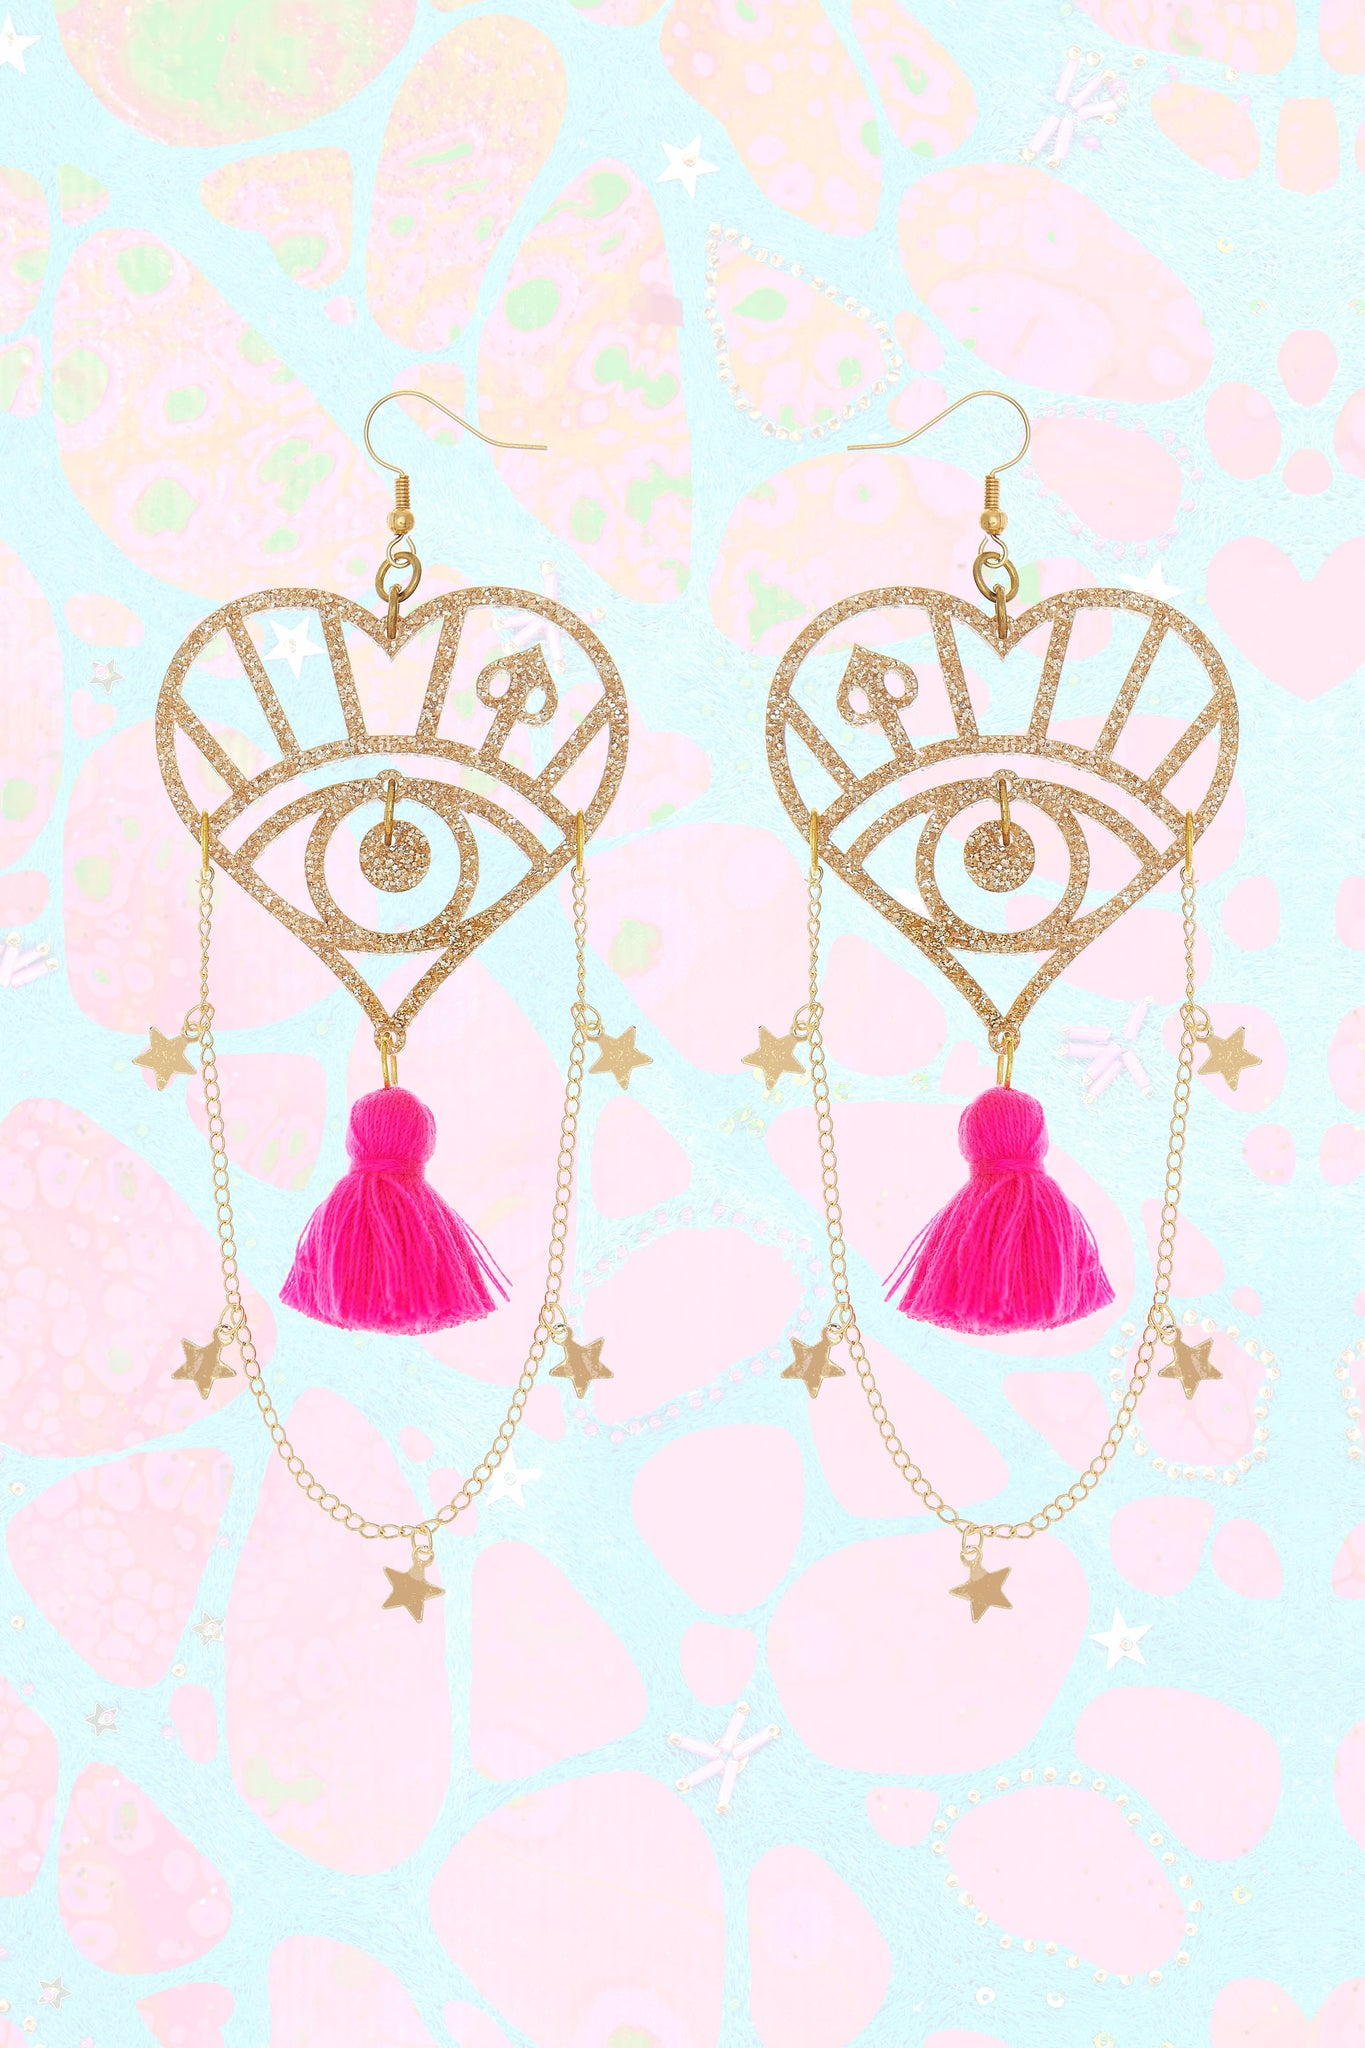 Star Chain Earrings with Pink Tassel